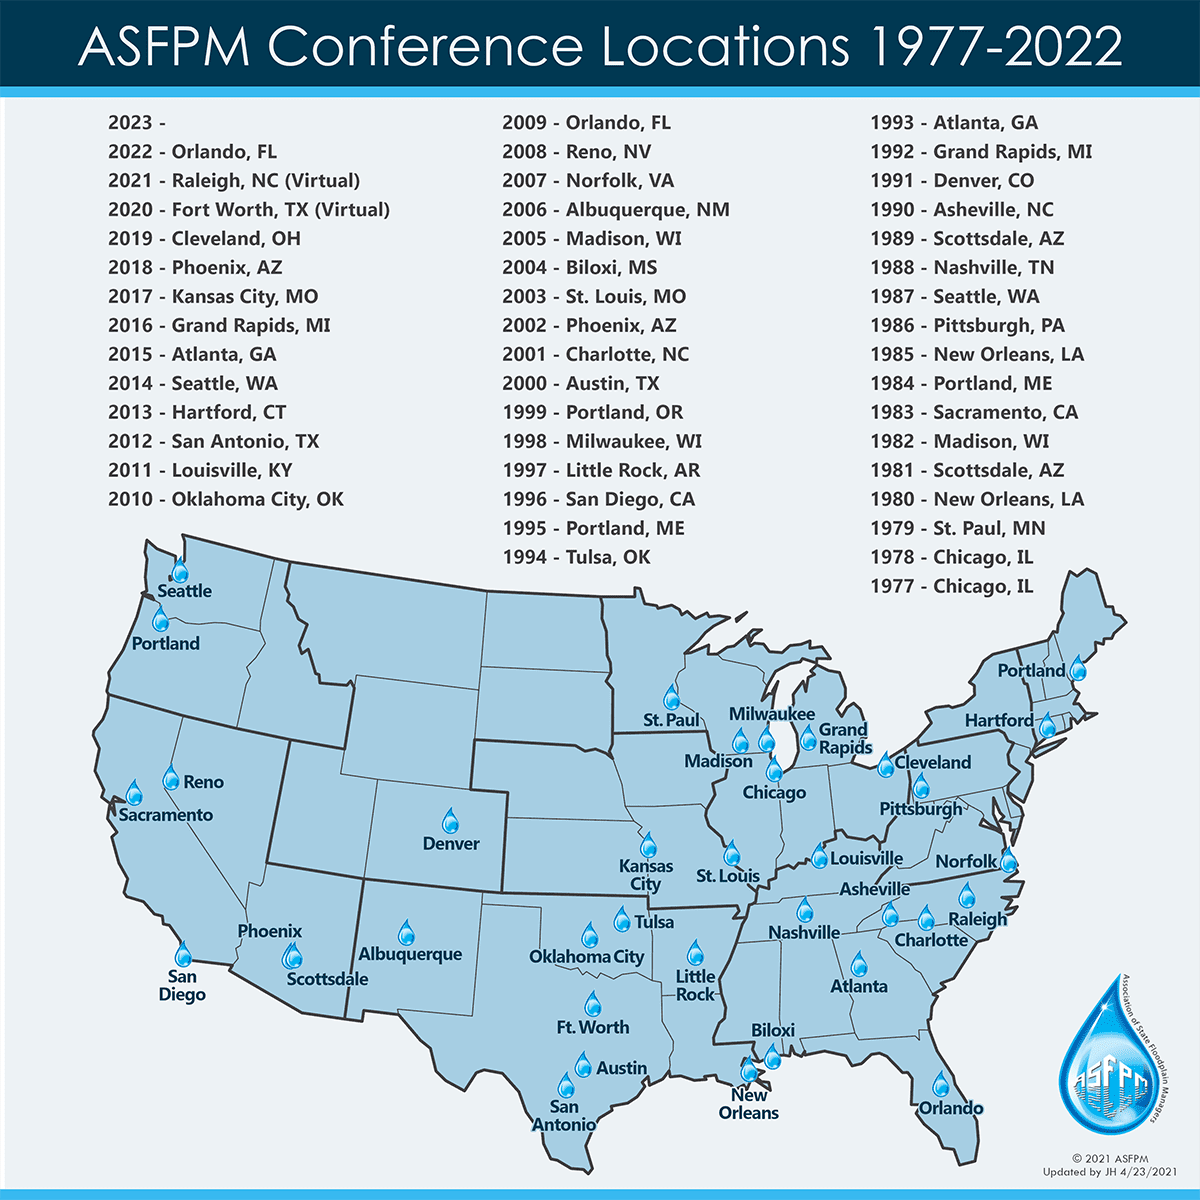 ASFPM Conference Locations 1977-2022